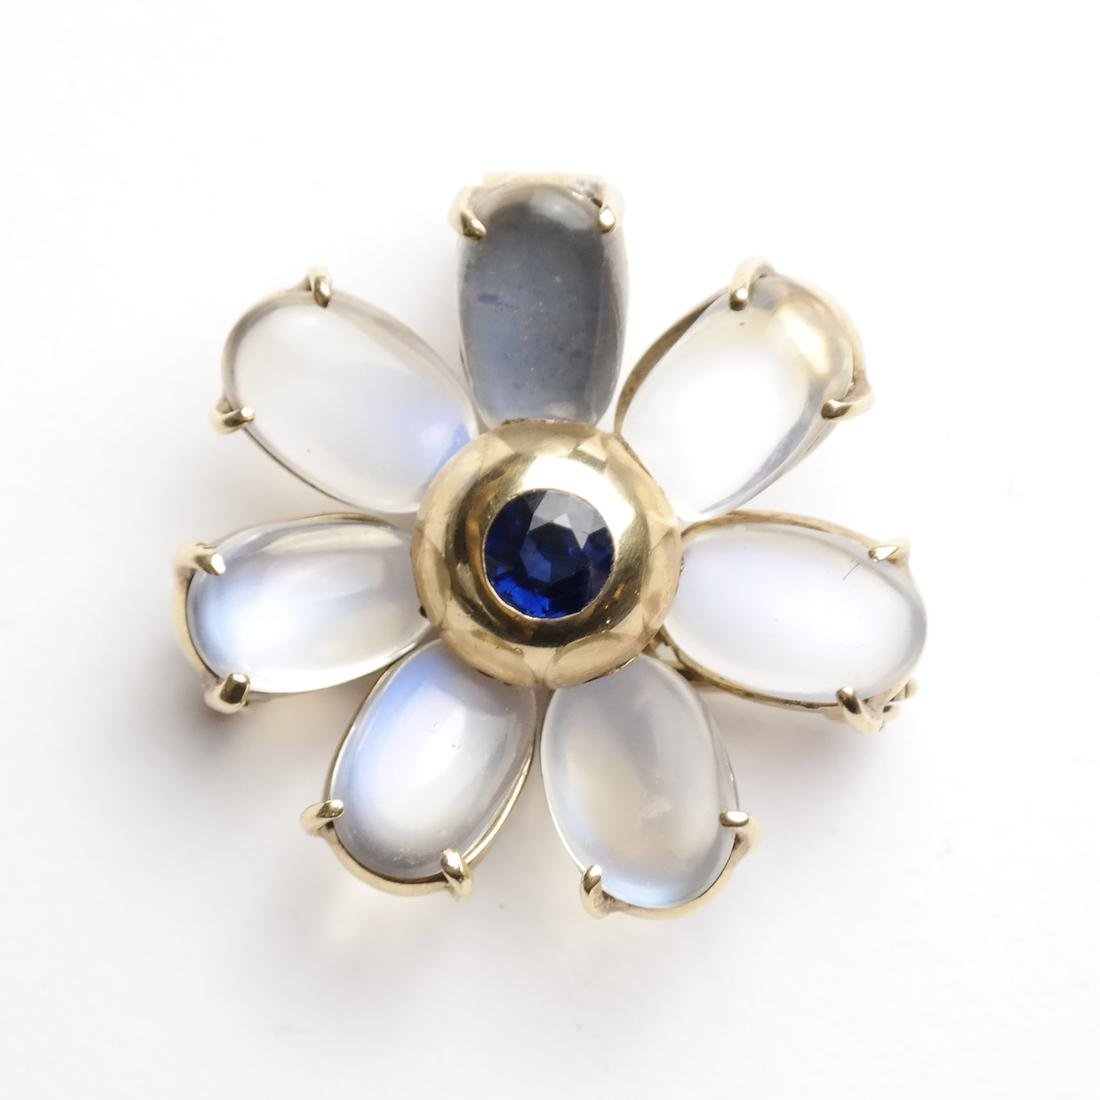 14k Gold Pin With Blue Sapphire